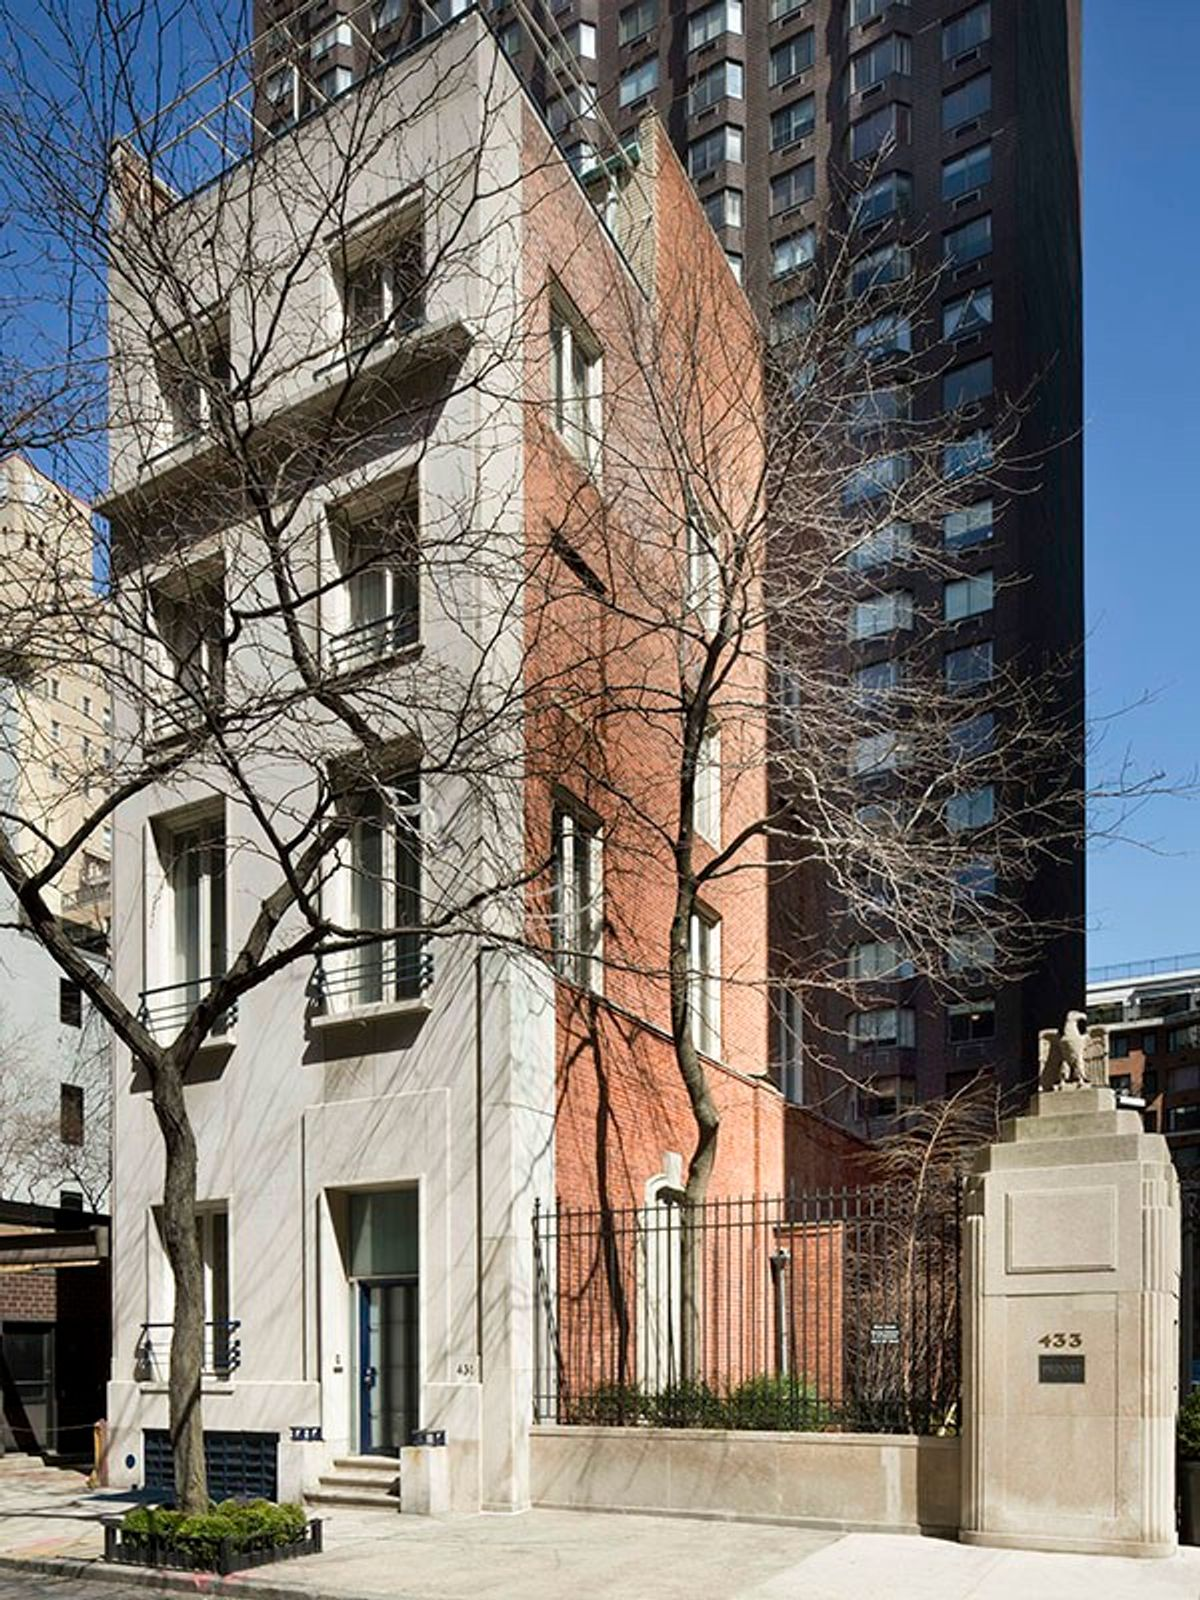 431 East 52nd Street, New York NY Townhouse - New York City Real Estate